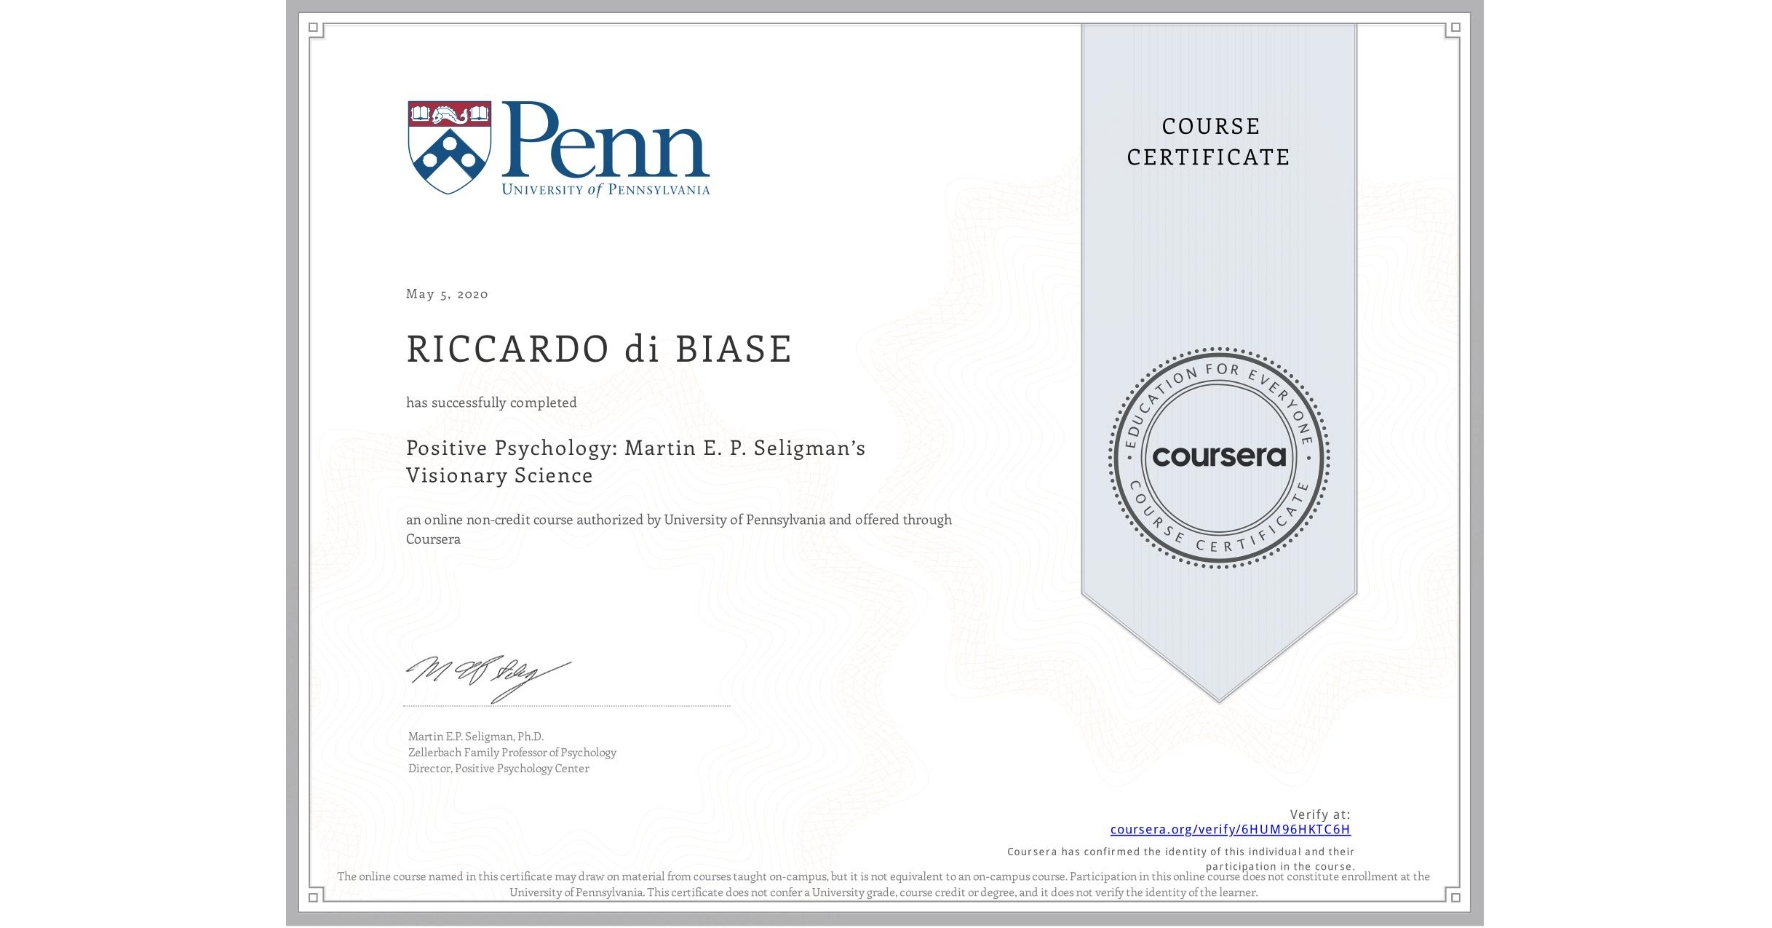 View certificate for RICCARDO di BIASE, Positive Psychology: Martin E. P. Seligman's Visionary Science, an online non-credit course authorized by University of Pennsylvania and offered through Coursera